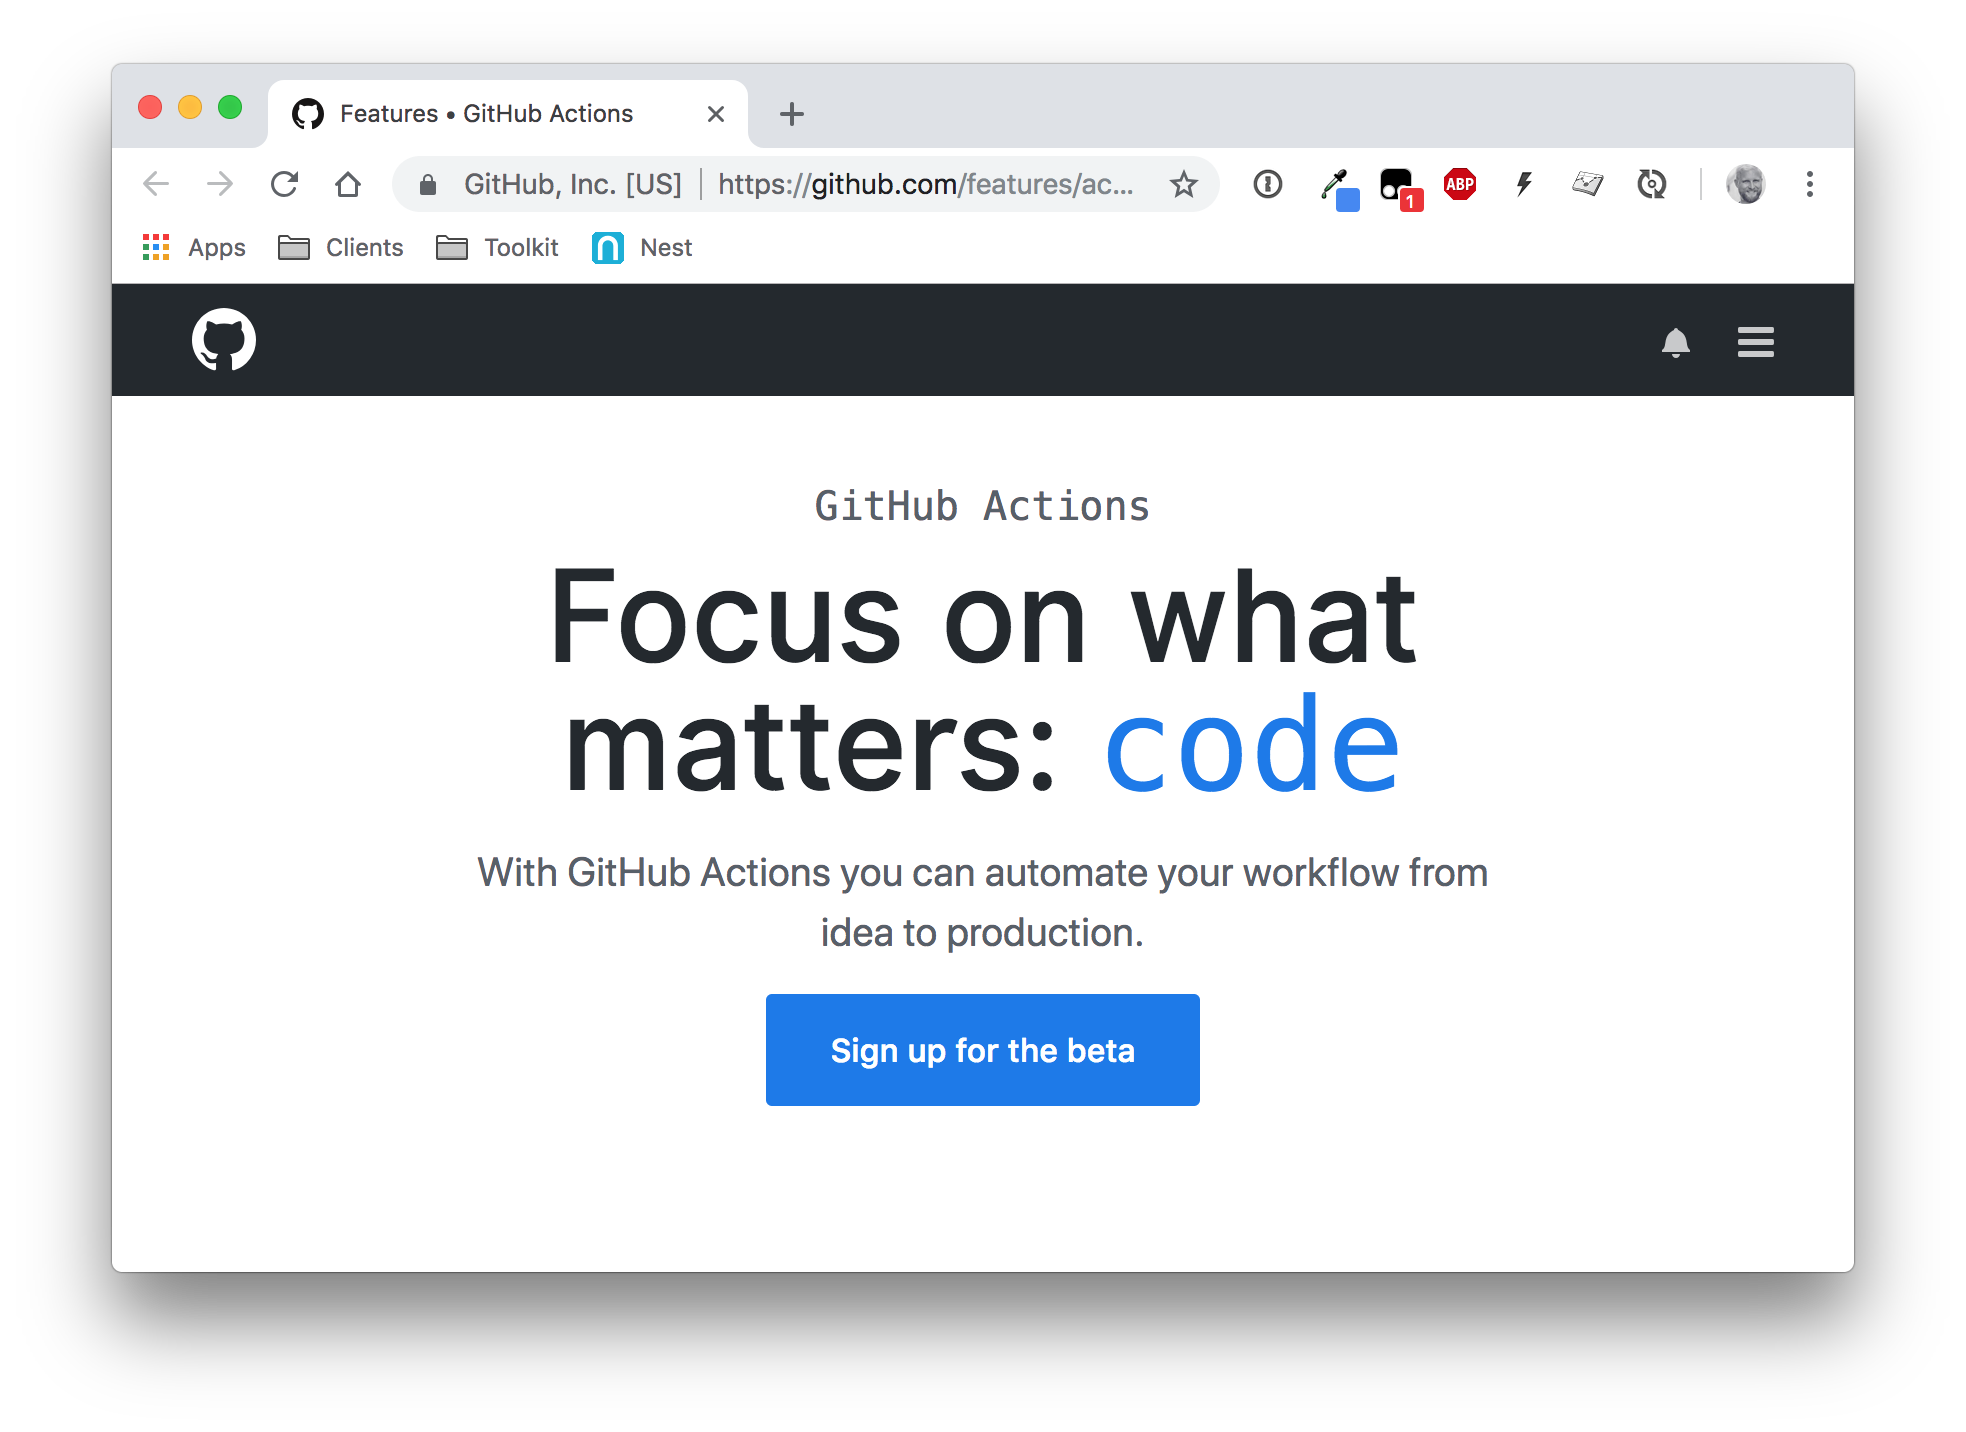 A screenshot of the GitHub Actions beta site showing a large blue button to click to join the beta.